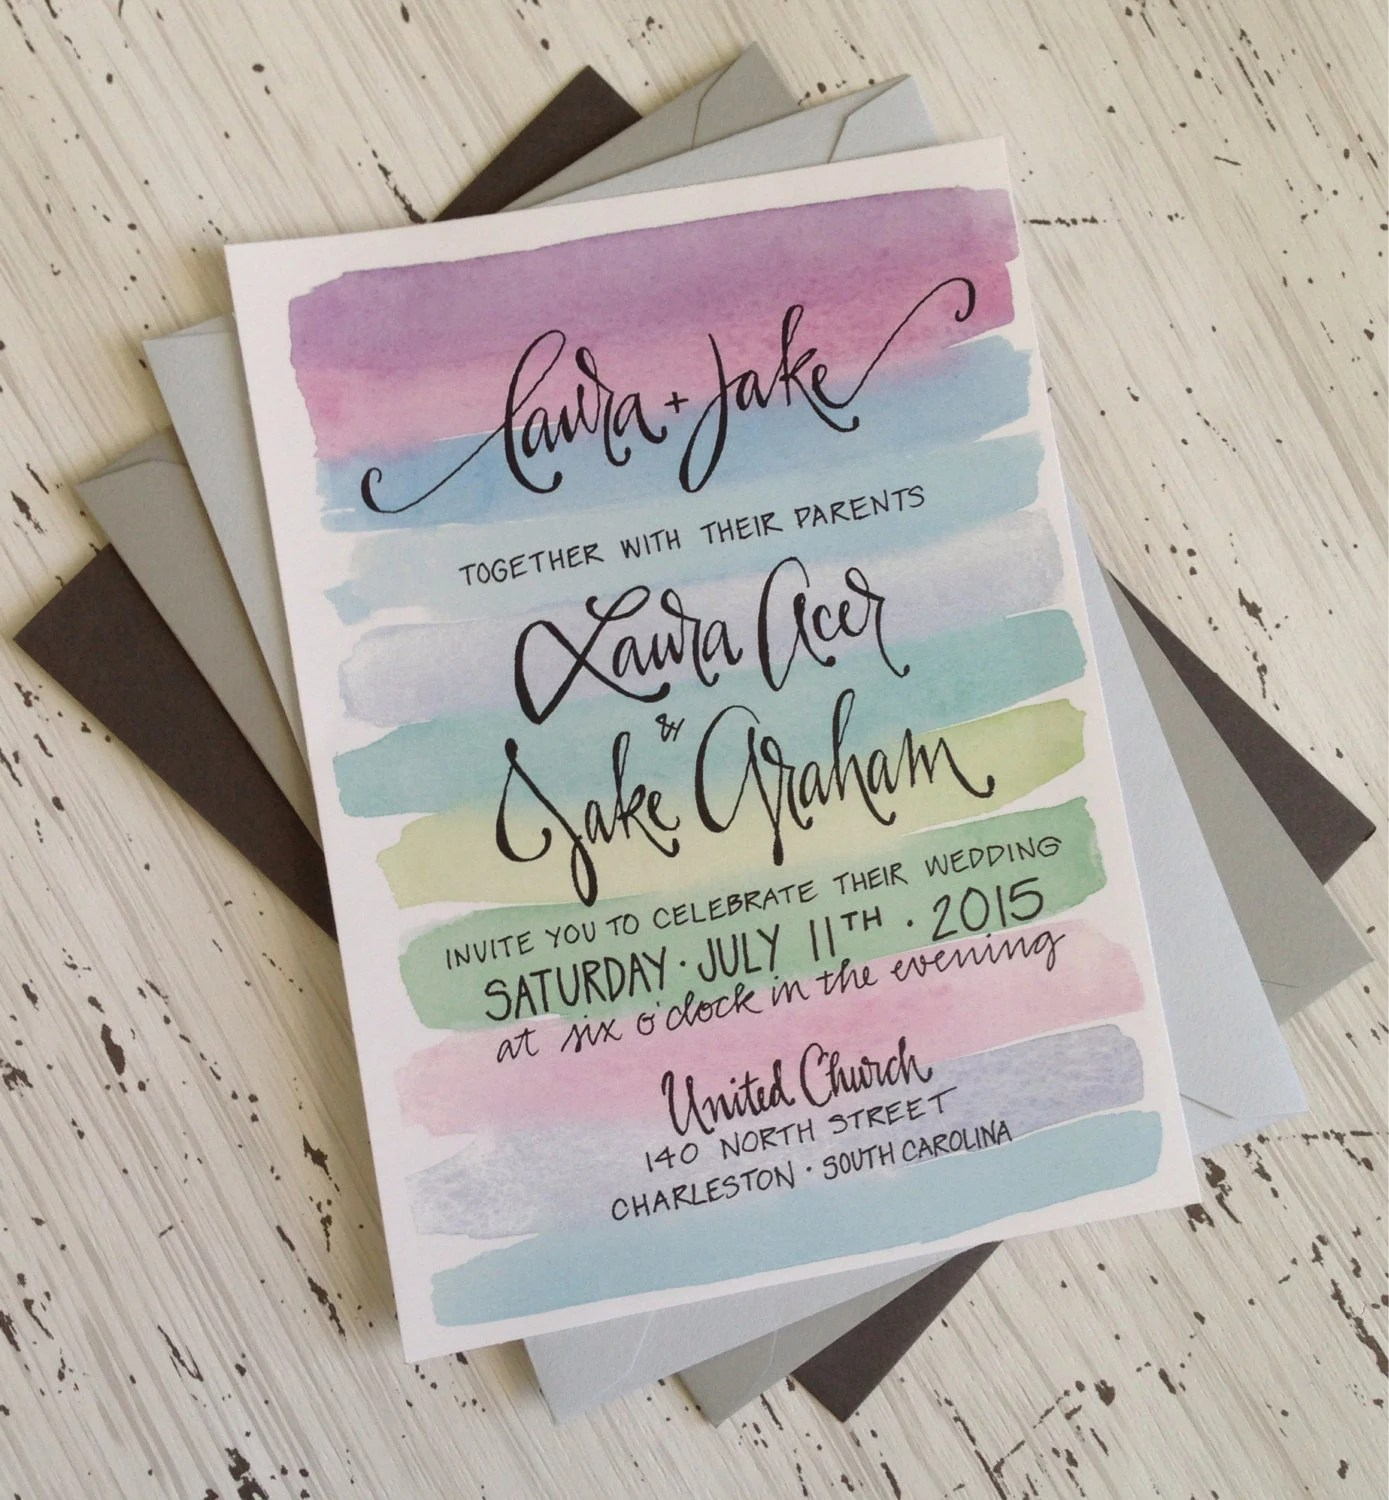 Calligraphy wedding invitation onepaperheart